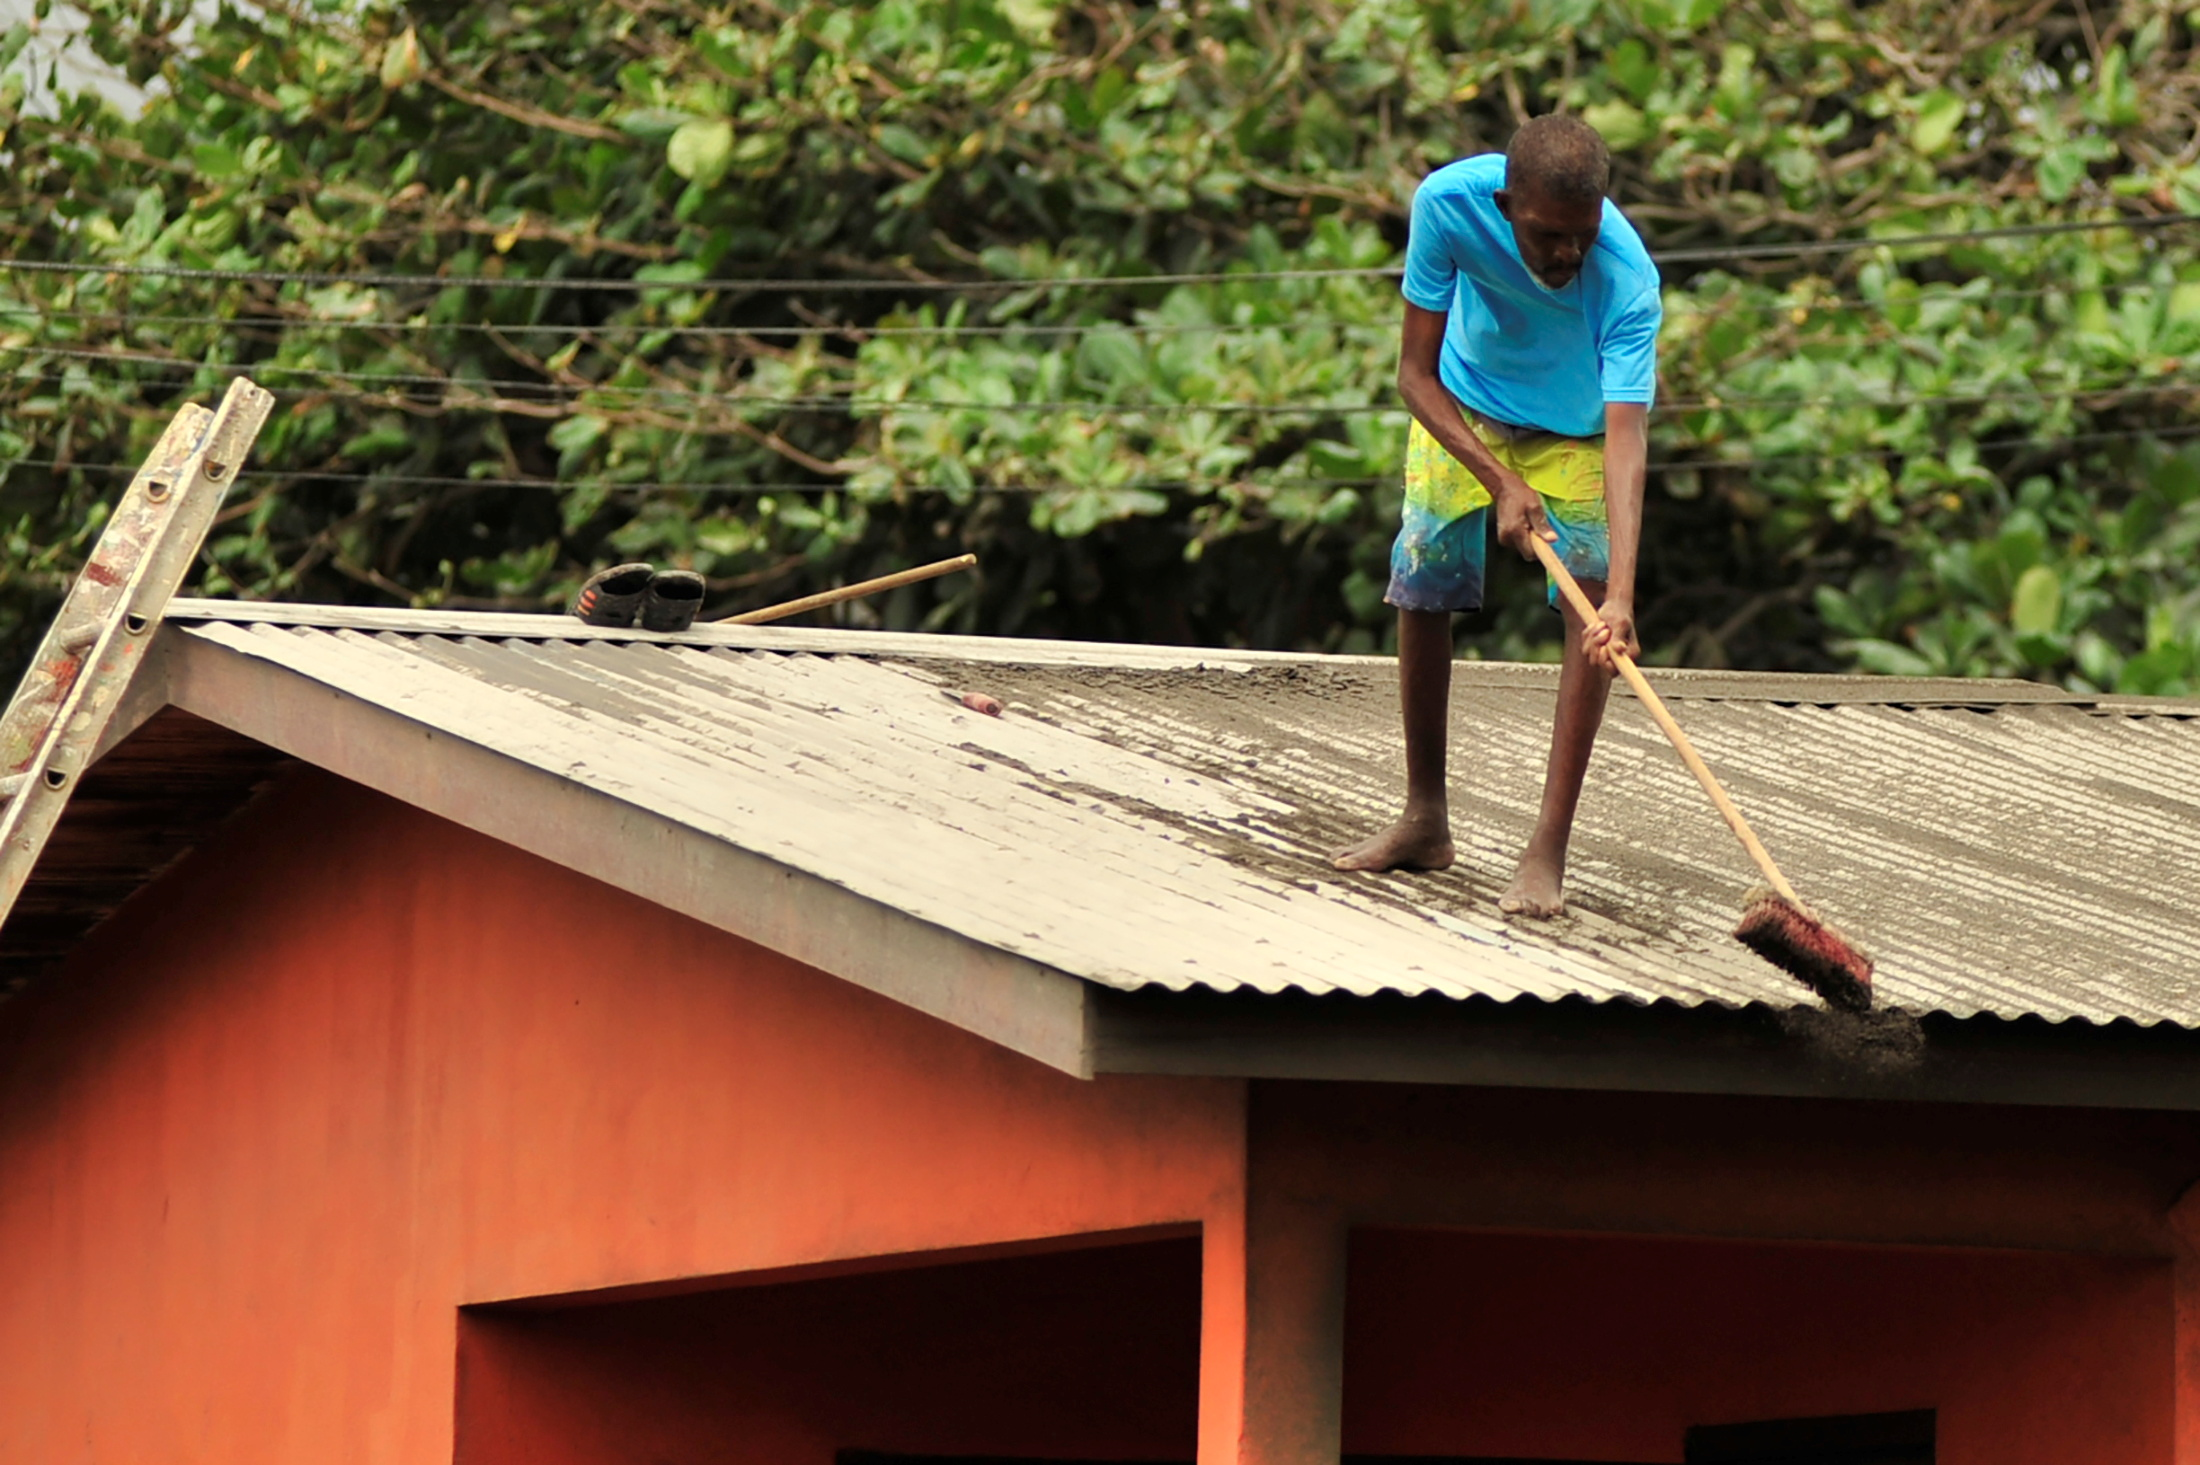 A local residents clears ash from a roof after a series of eruptions from La Soufriere volcano covered the area with a thick layer of ash in Georgetown, Saint Vincent and the Grenadines, April 13, 2021.  REUTERS/Robertson S. Henry